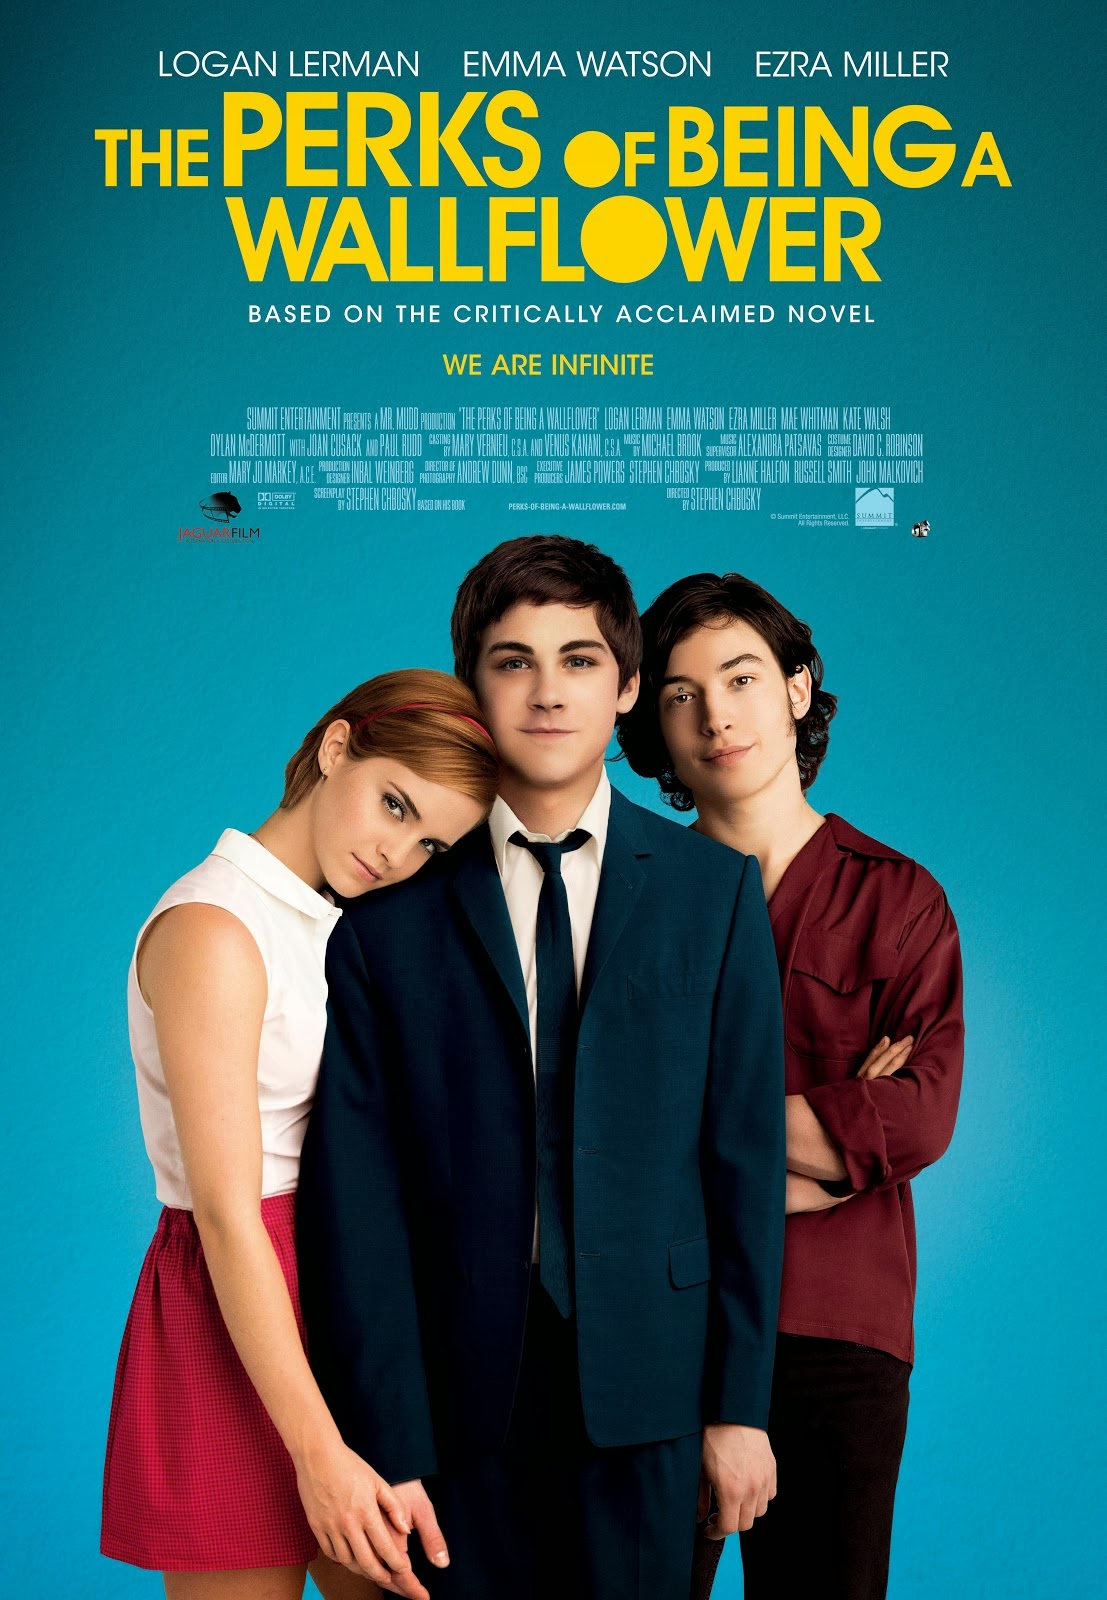 Crazy Girl At Cinema The Perks Of Being A Wallflower A Realistic And Charming Coming Of Age Movie With Lovely Soundtracks